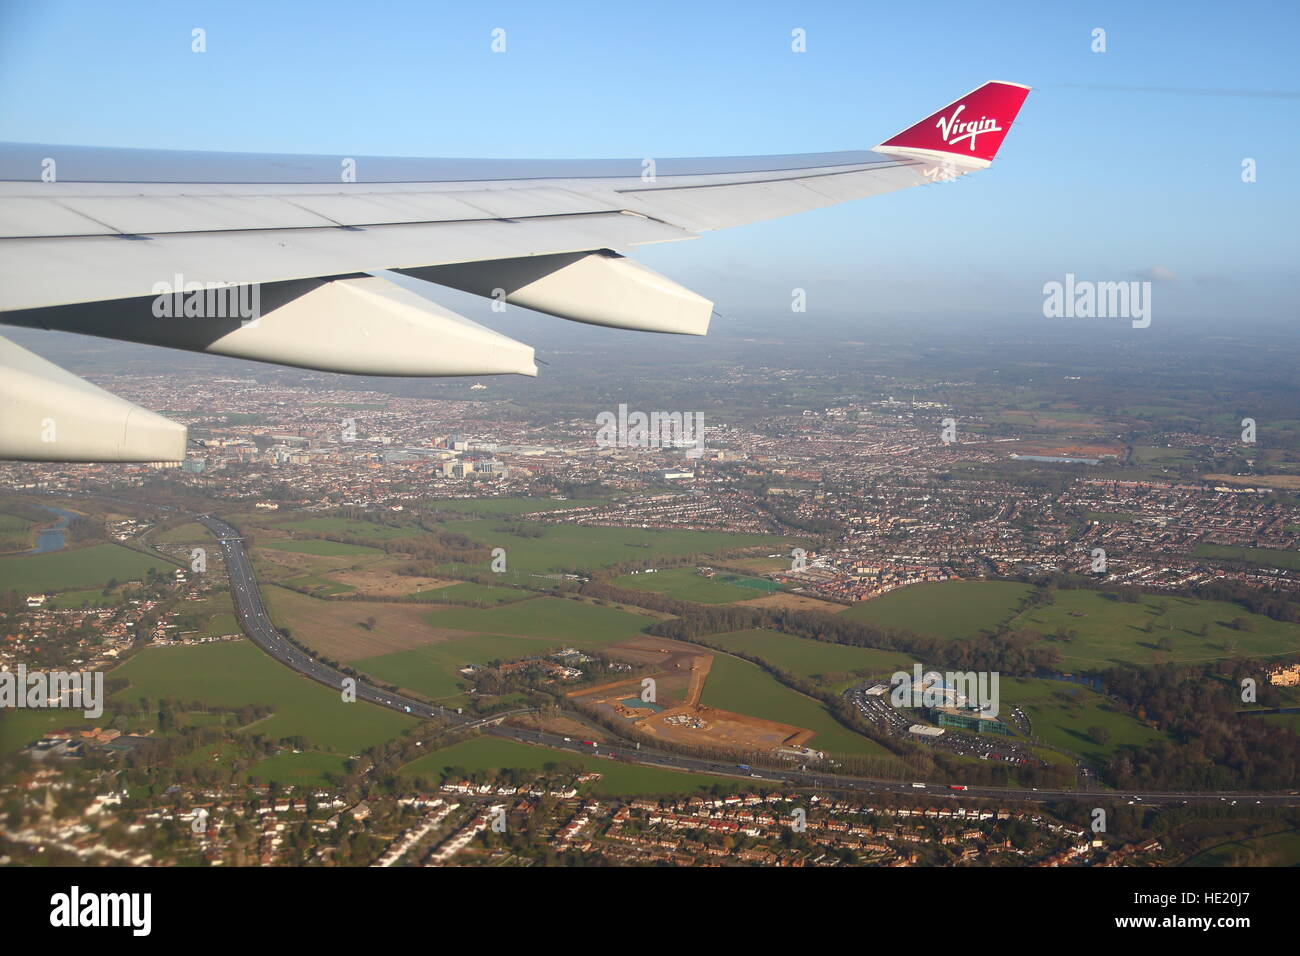 View from a Virgin plane over the Thames valley in Henley-on-Thames, UK Stock Photo